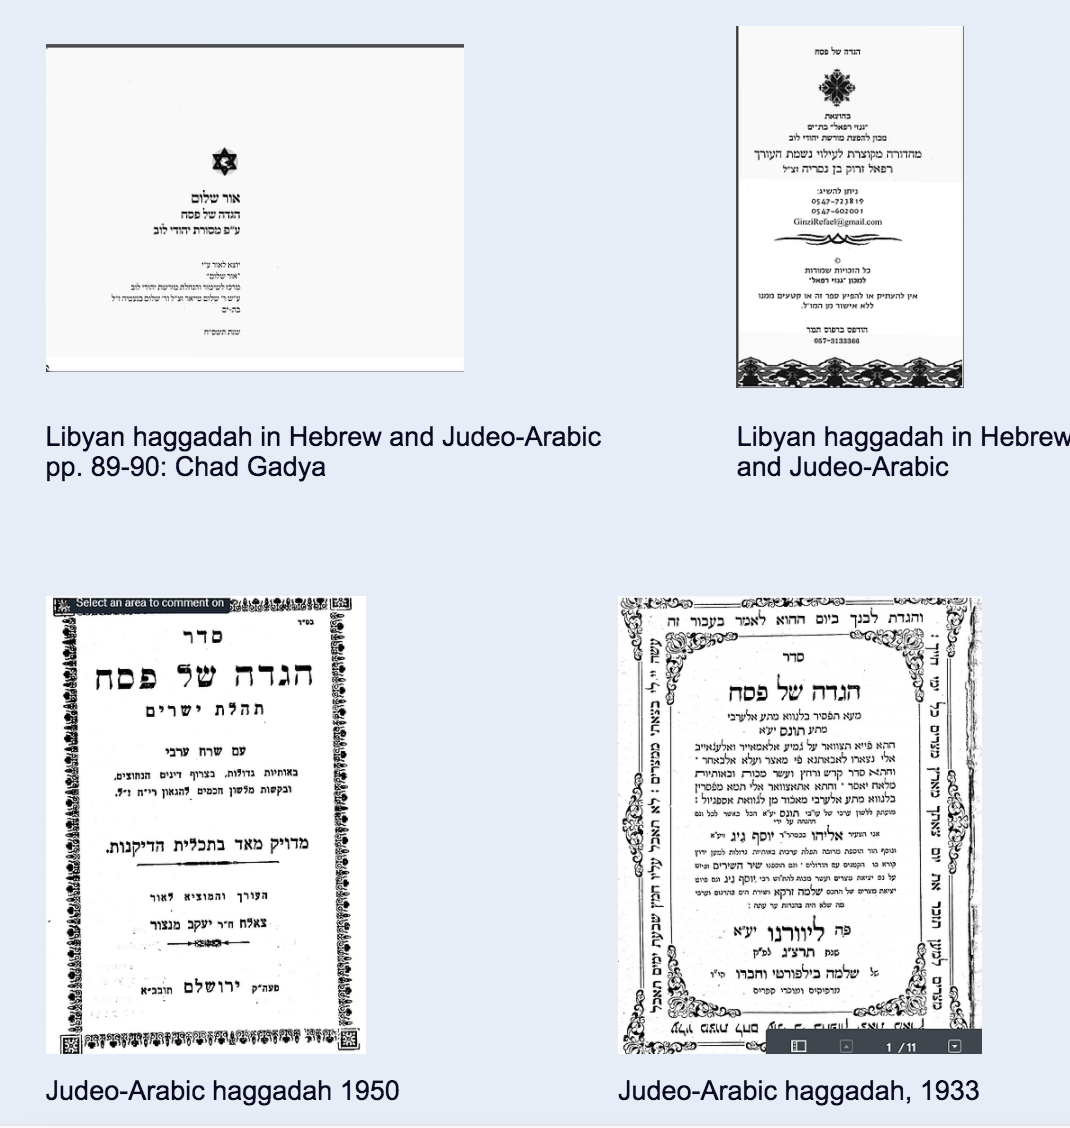 "<p>Judeo-Arabic Haggadot collected in the Passover section of the Jewish Languages Project website. Source:&nbsp;<a href=""https://www.jewishlanguages.org/images-of-haggadot"">https://www.jewishlanguages.org/images-of-haggadot</a></p>"